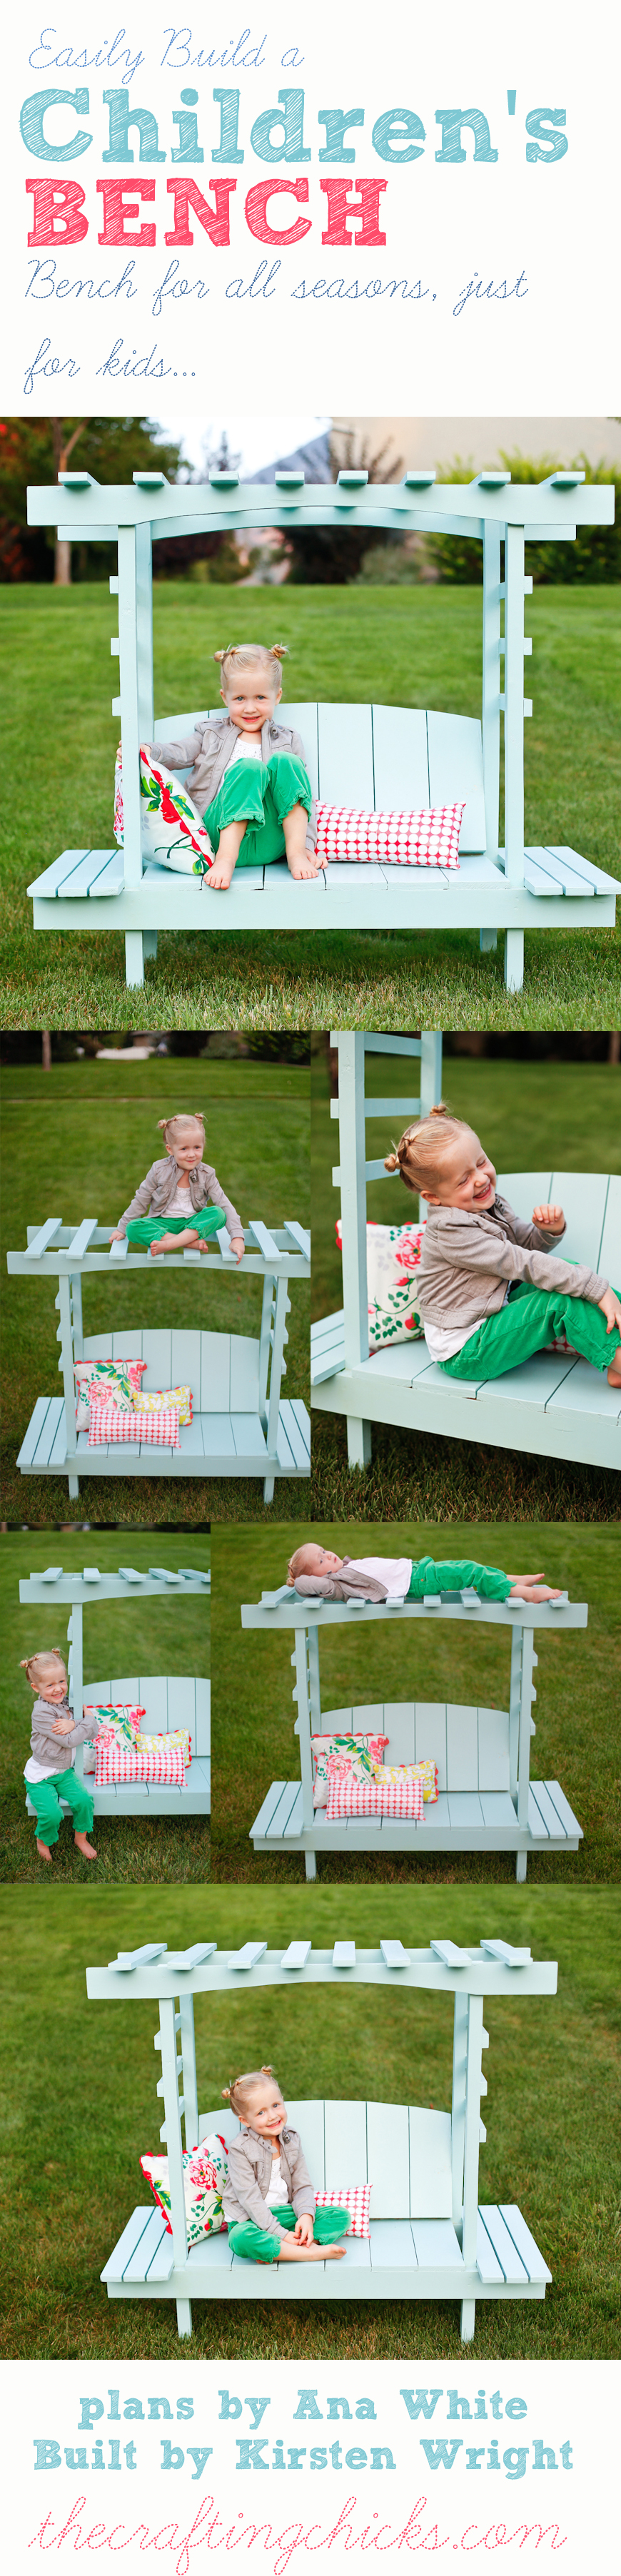 DIY Children's Arbor Bench | A fun project that will provide hours of fun in your backyard this summer!